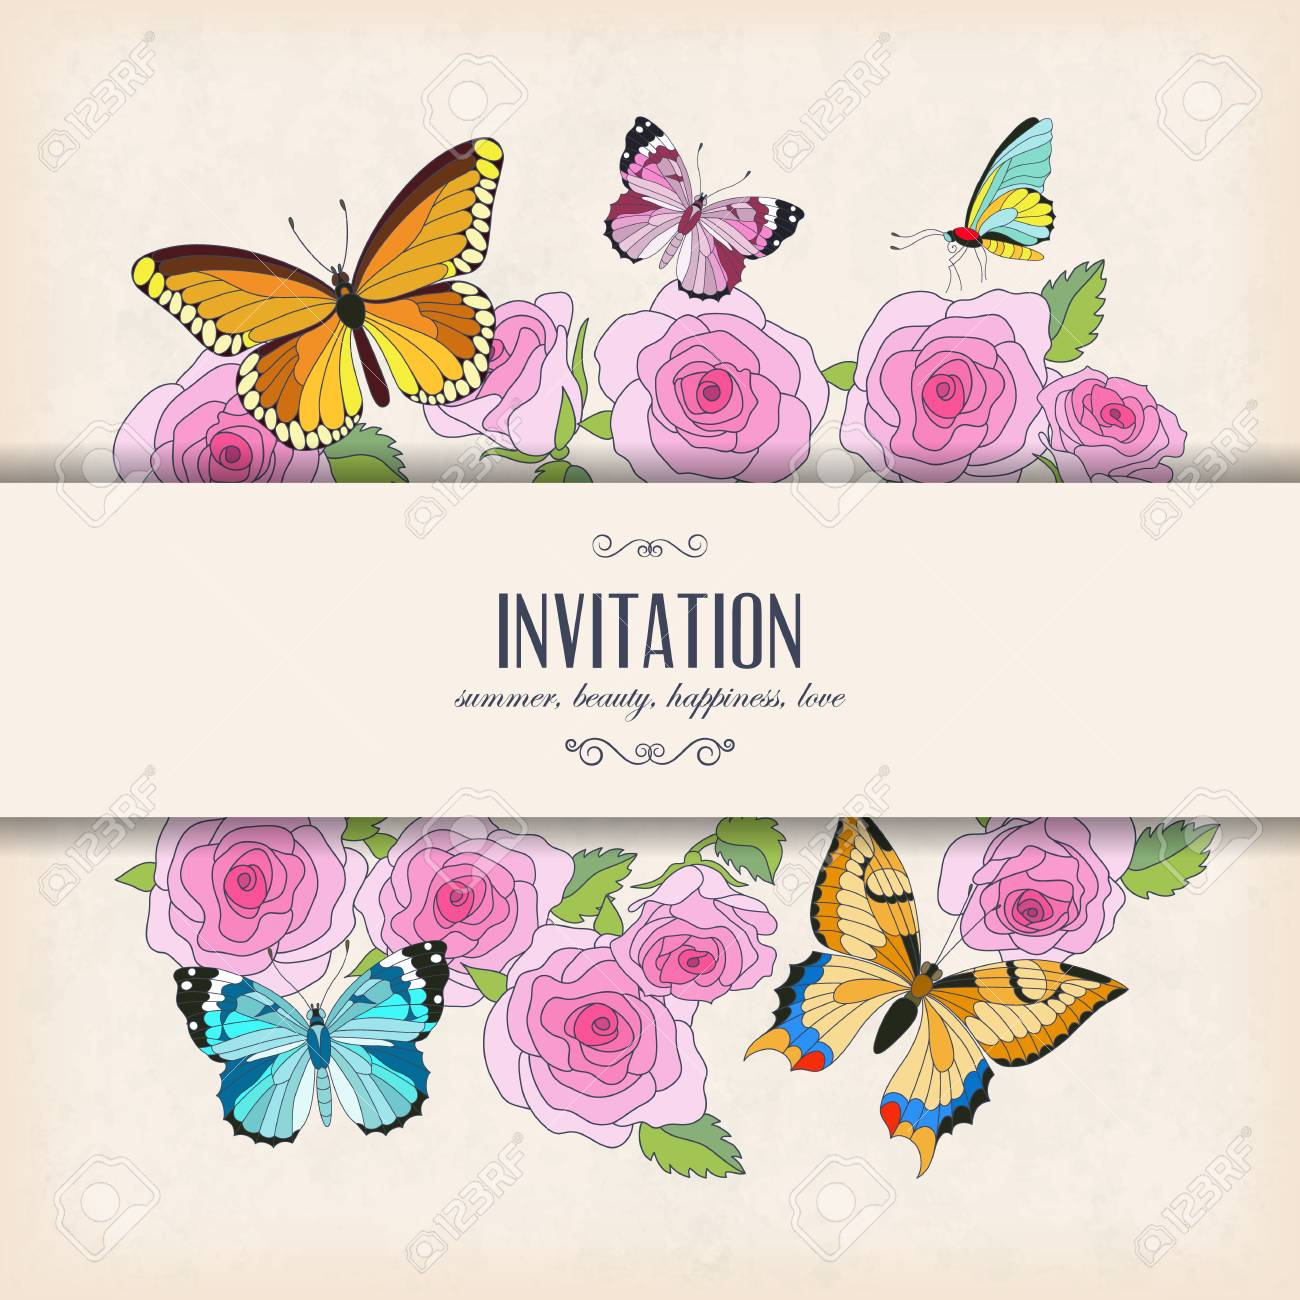 Vector Invitation Card With Butterflies And Roses Place For